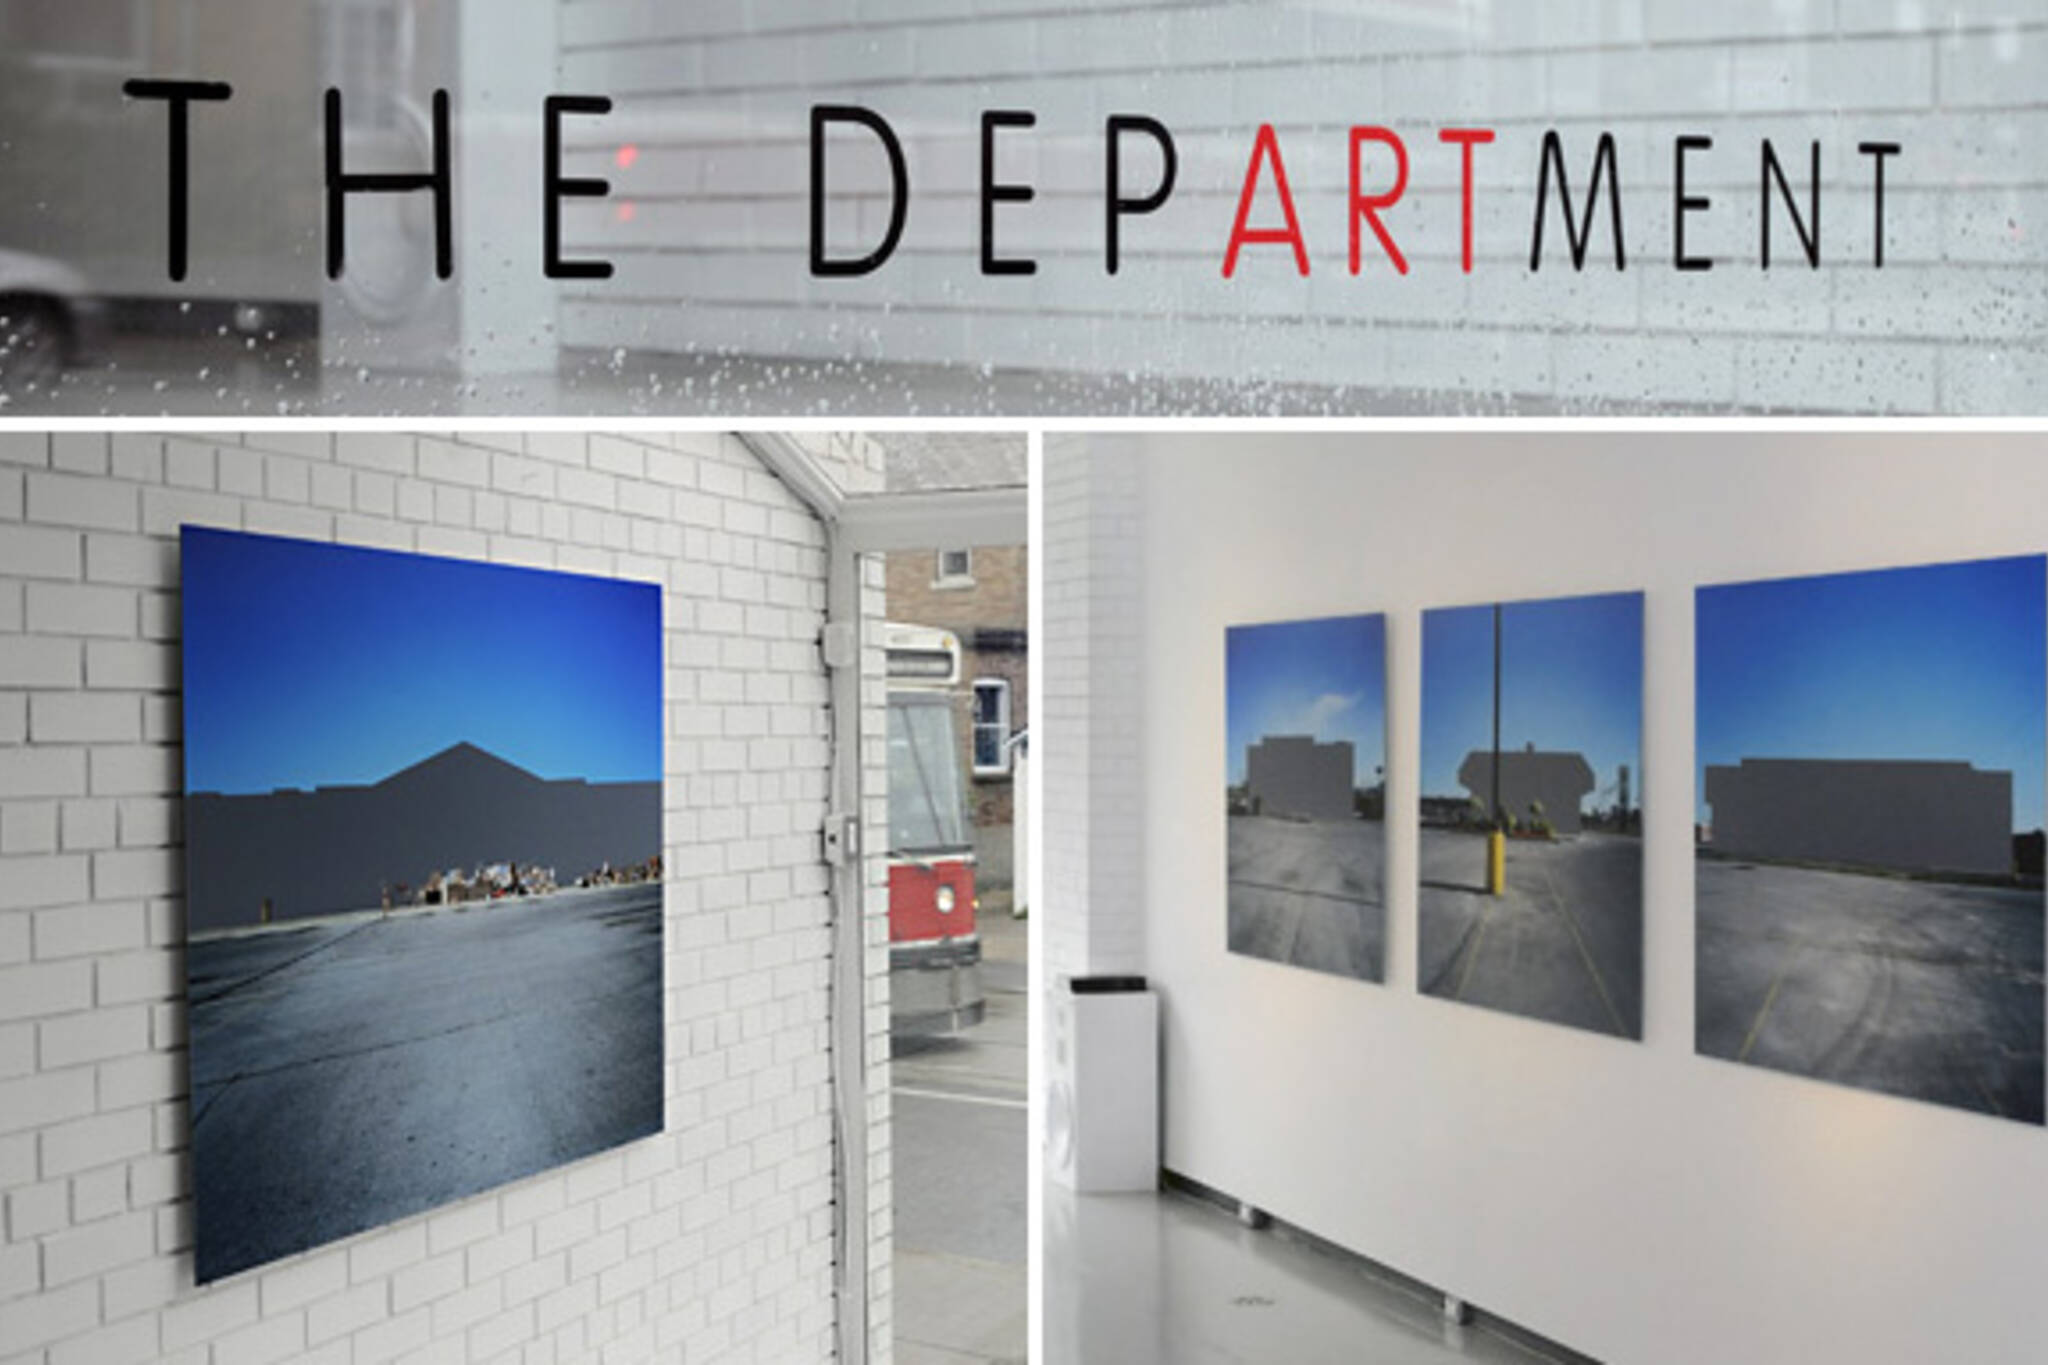 The Derpartment